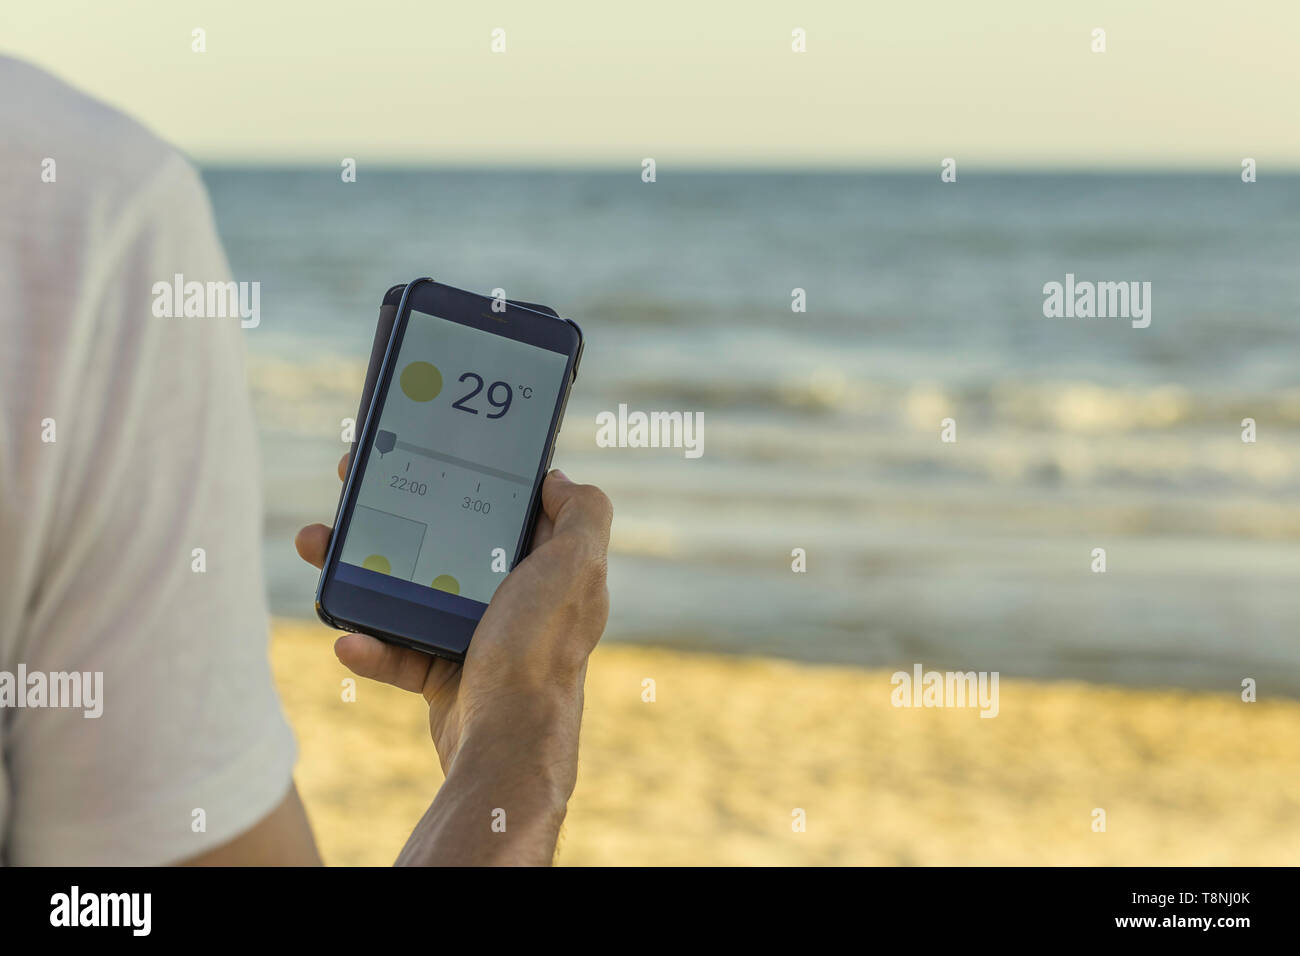 Smart phone with weather forecast on screen, smart phone dialing 20ºC at Matalascañas beach in Huelva, Andalusia, Spain - Stock Image